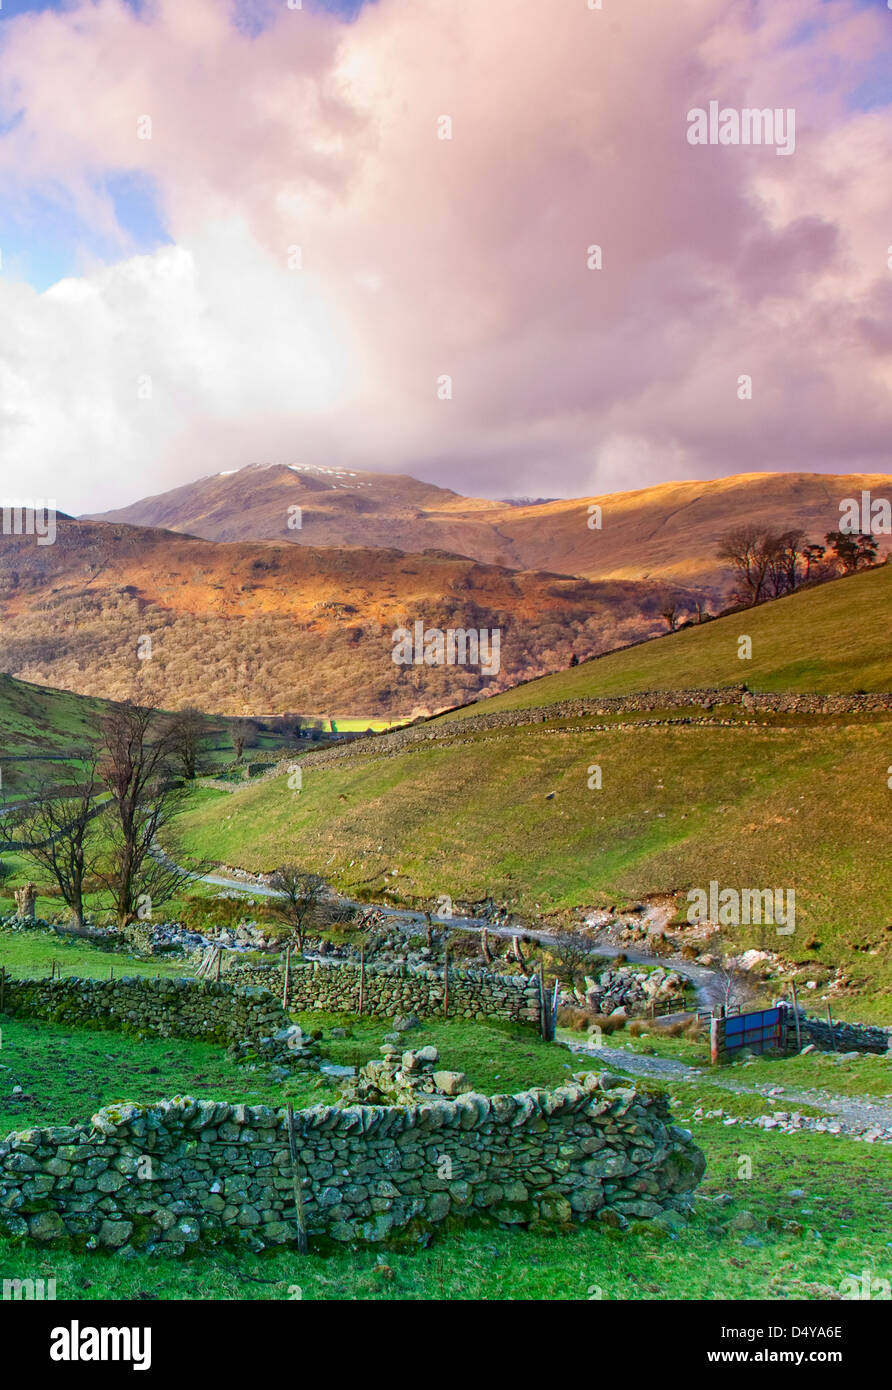 Footpath coming down from Haywater towards Hartsop Village, January, Patterdale area, Lake District National Park, - Stock Image